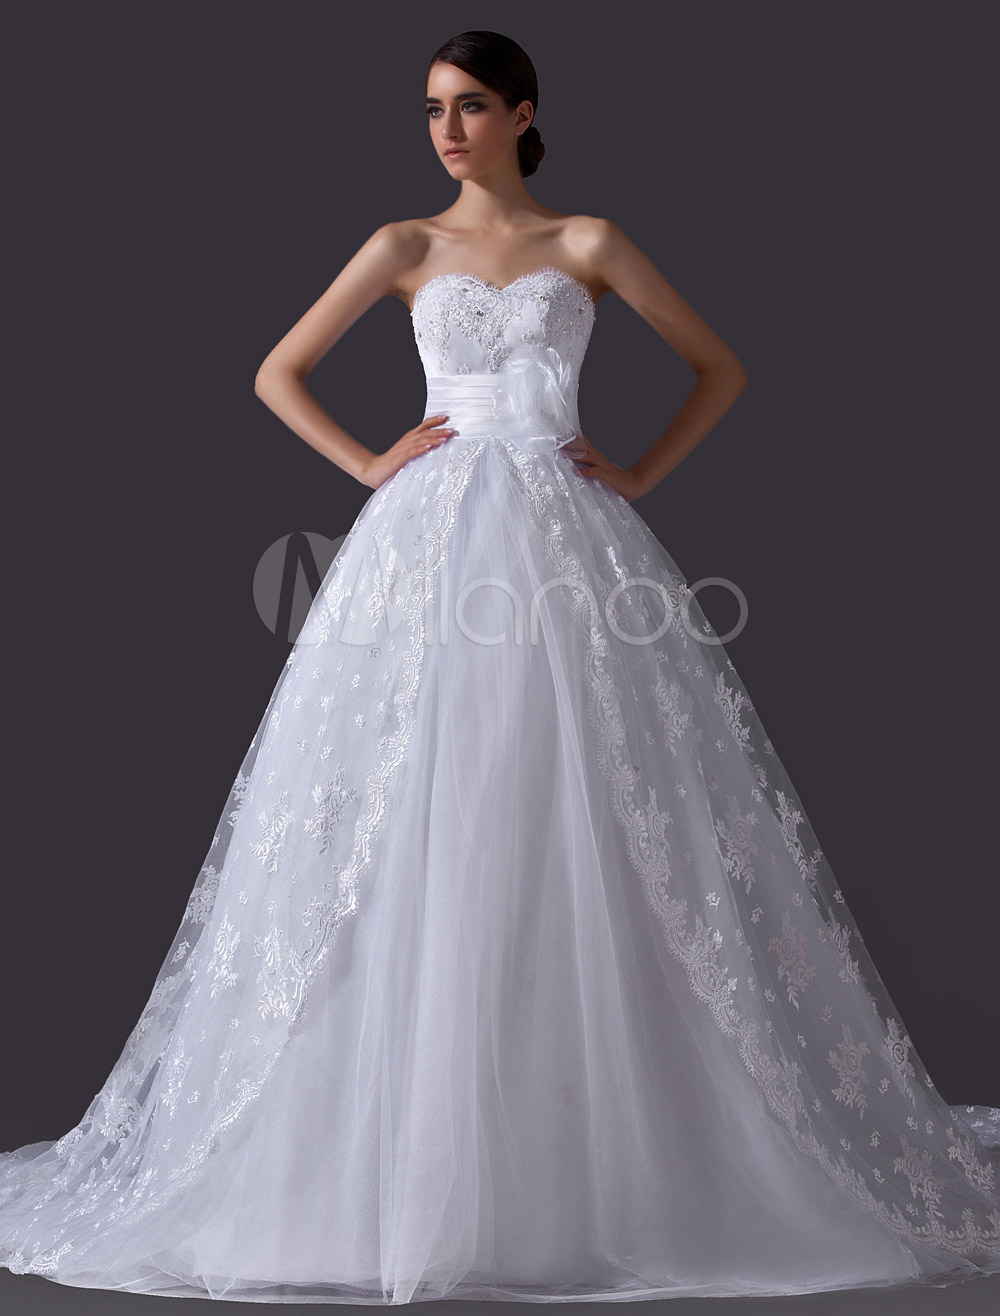 Classic White A-line Sweetheart Neck Wedding Dress with Flower Lace Design